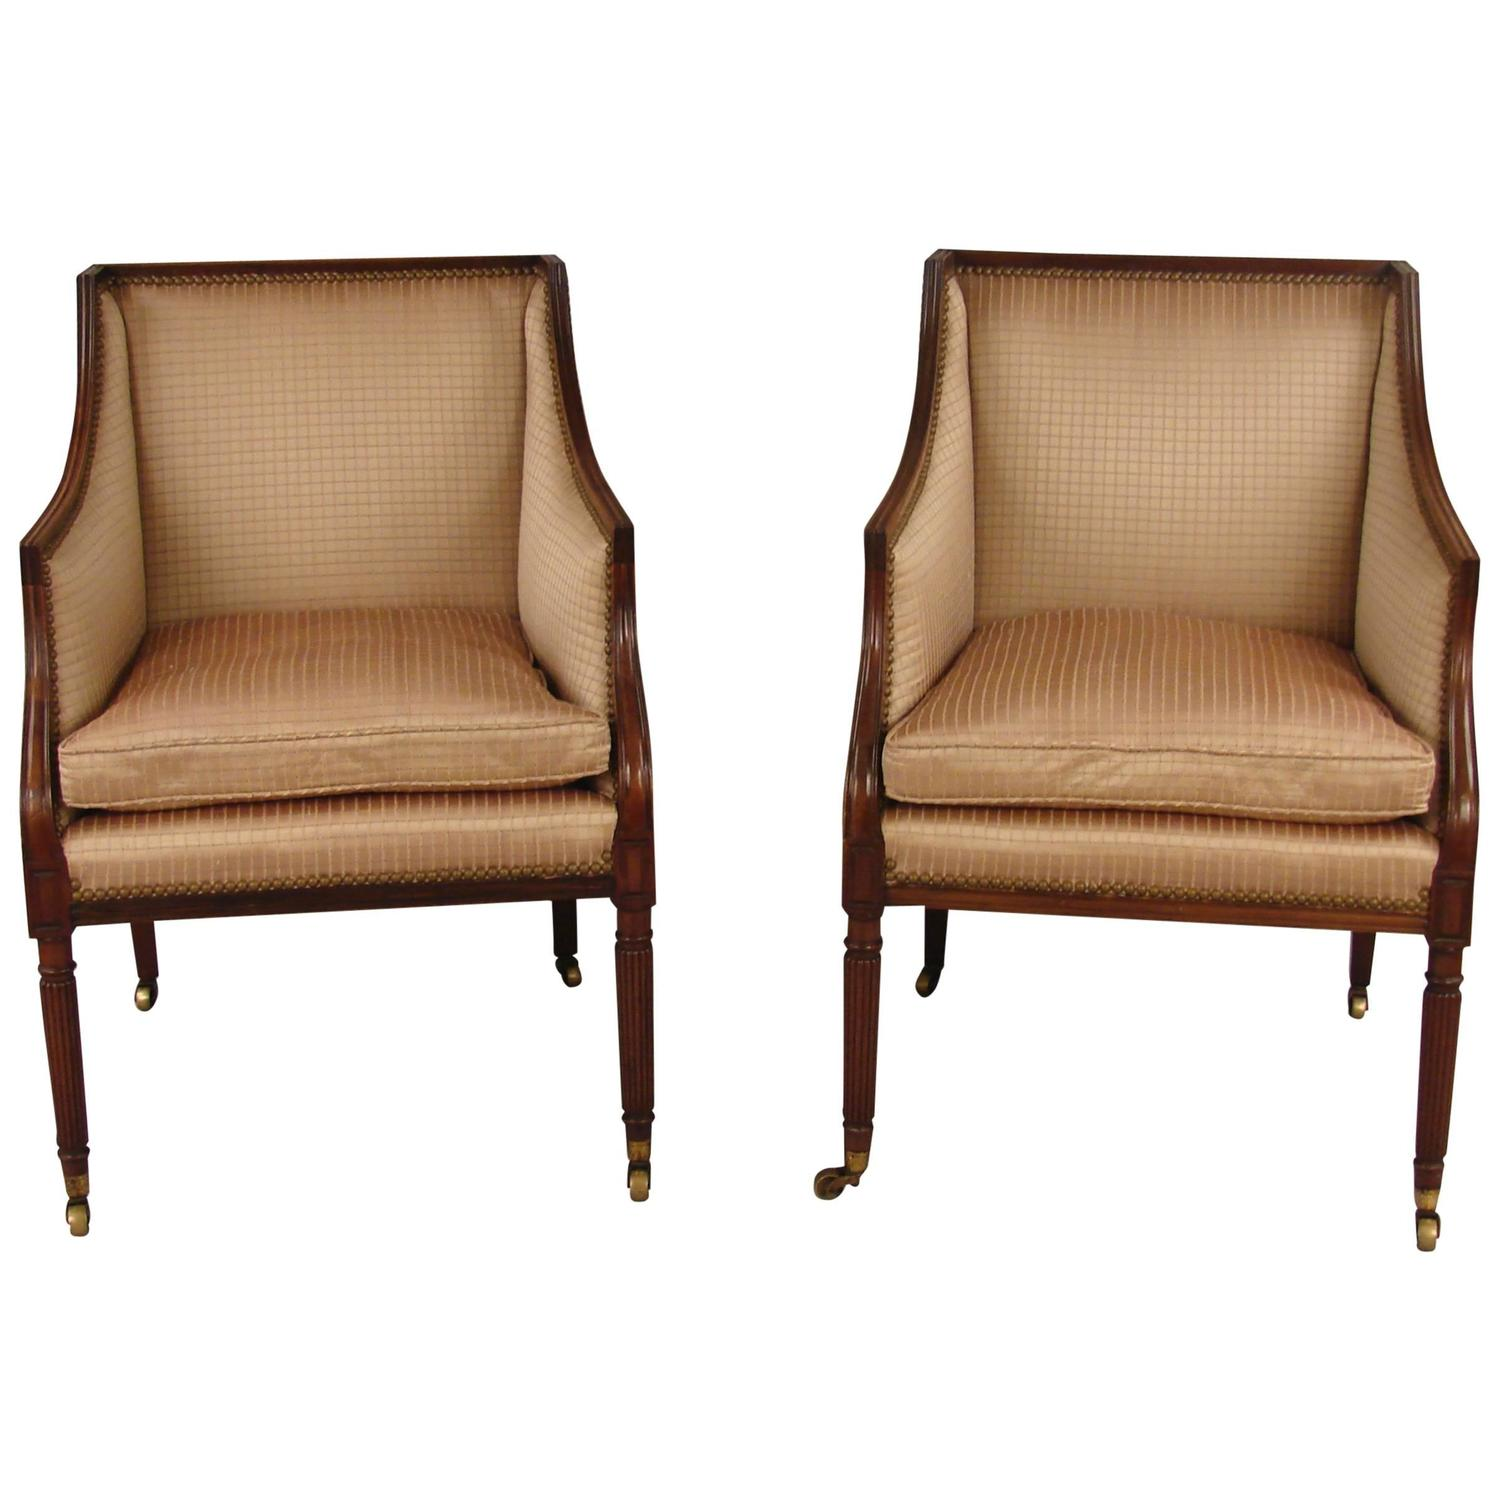 pair of regency style upholstered arm chairs at 1stdibs